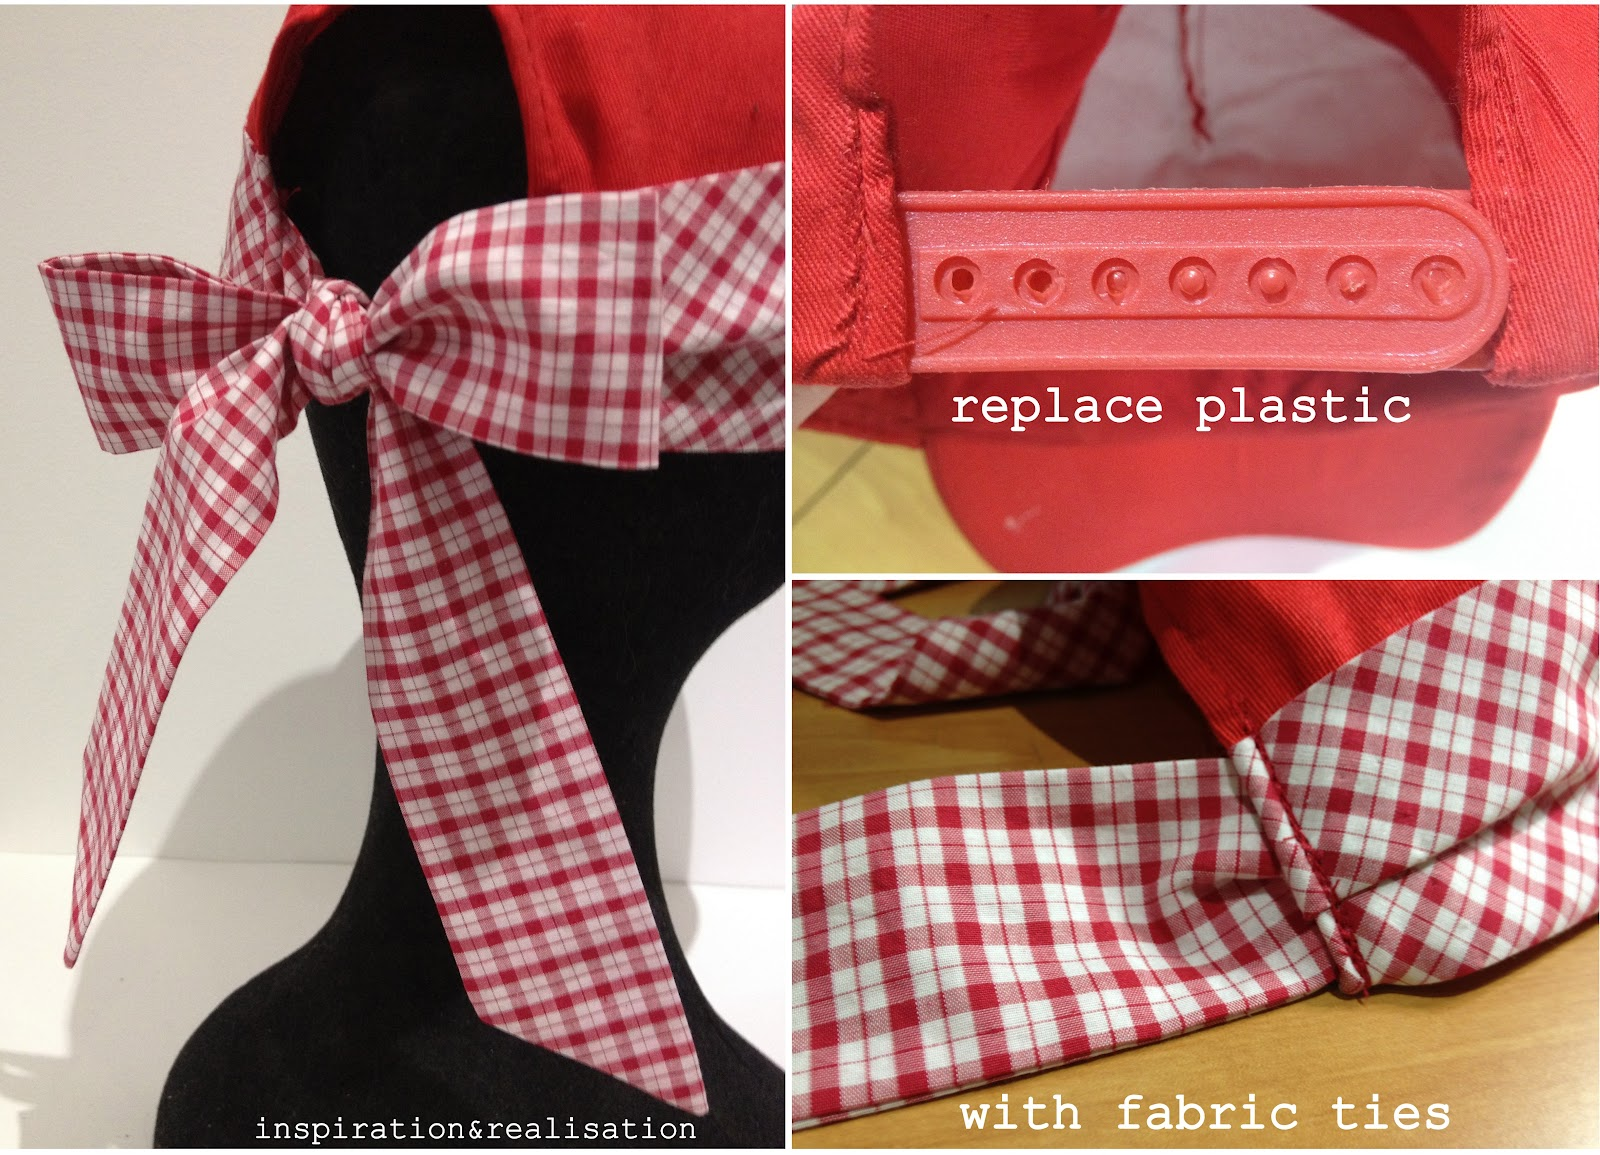 inspiration and realisation  DIY fashion blog  DIY from marketing to ... 24d21b3d6fc